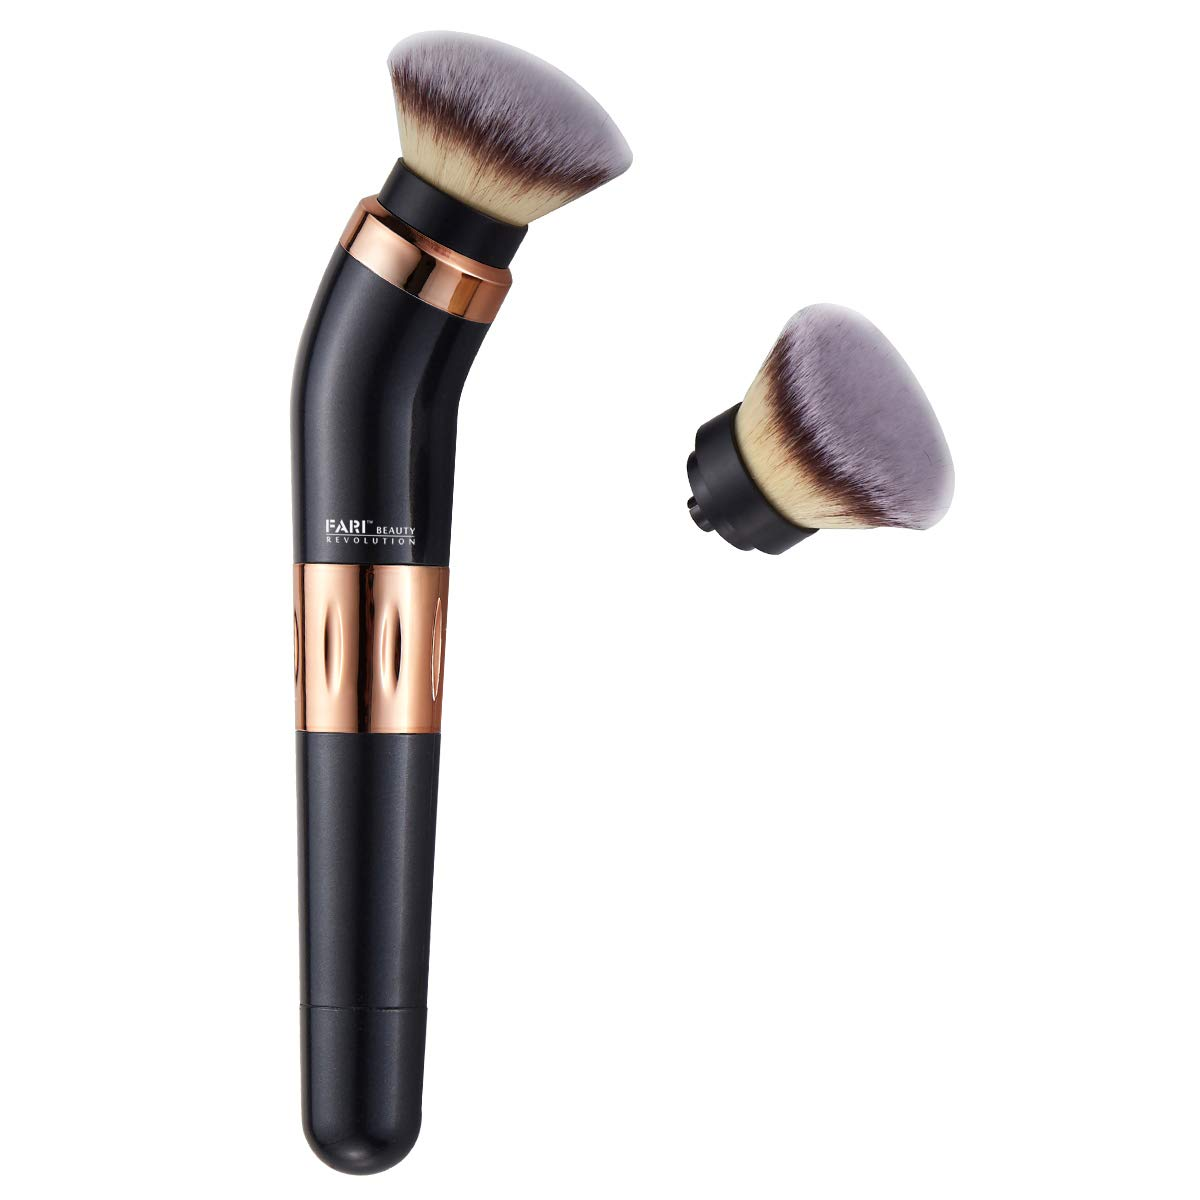 FARI Electric Rotating Makeup Brush, 360 Degree Rotary Cosmetic Brush with Premium Synthetic Foundation and Blush Heades, 2 Brush Heads Included